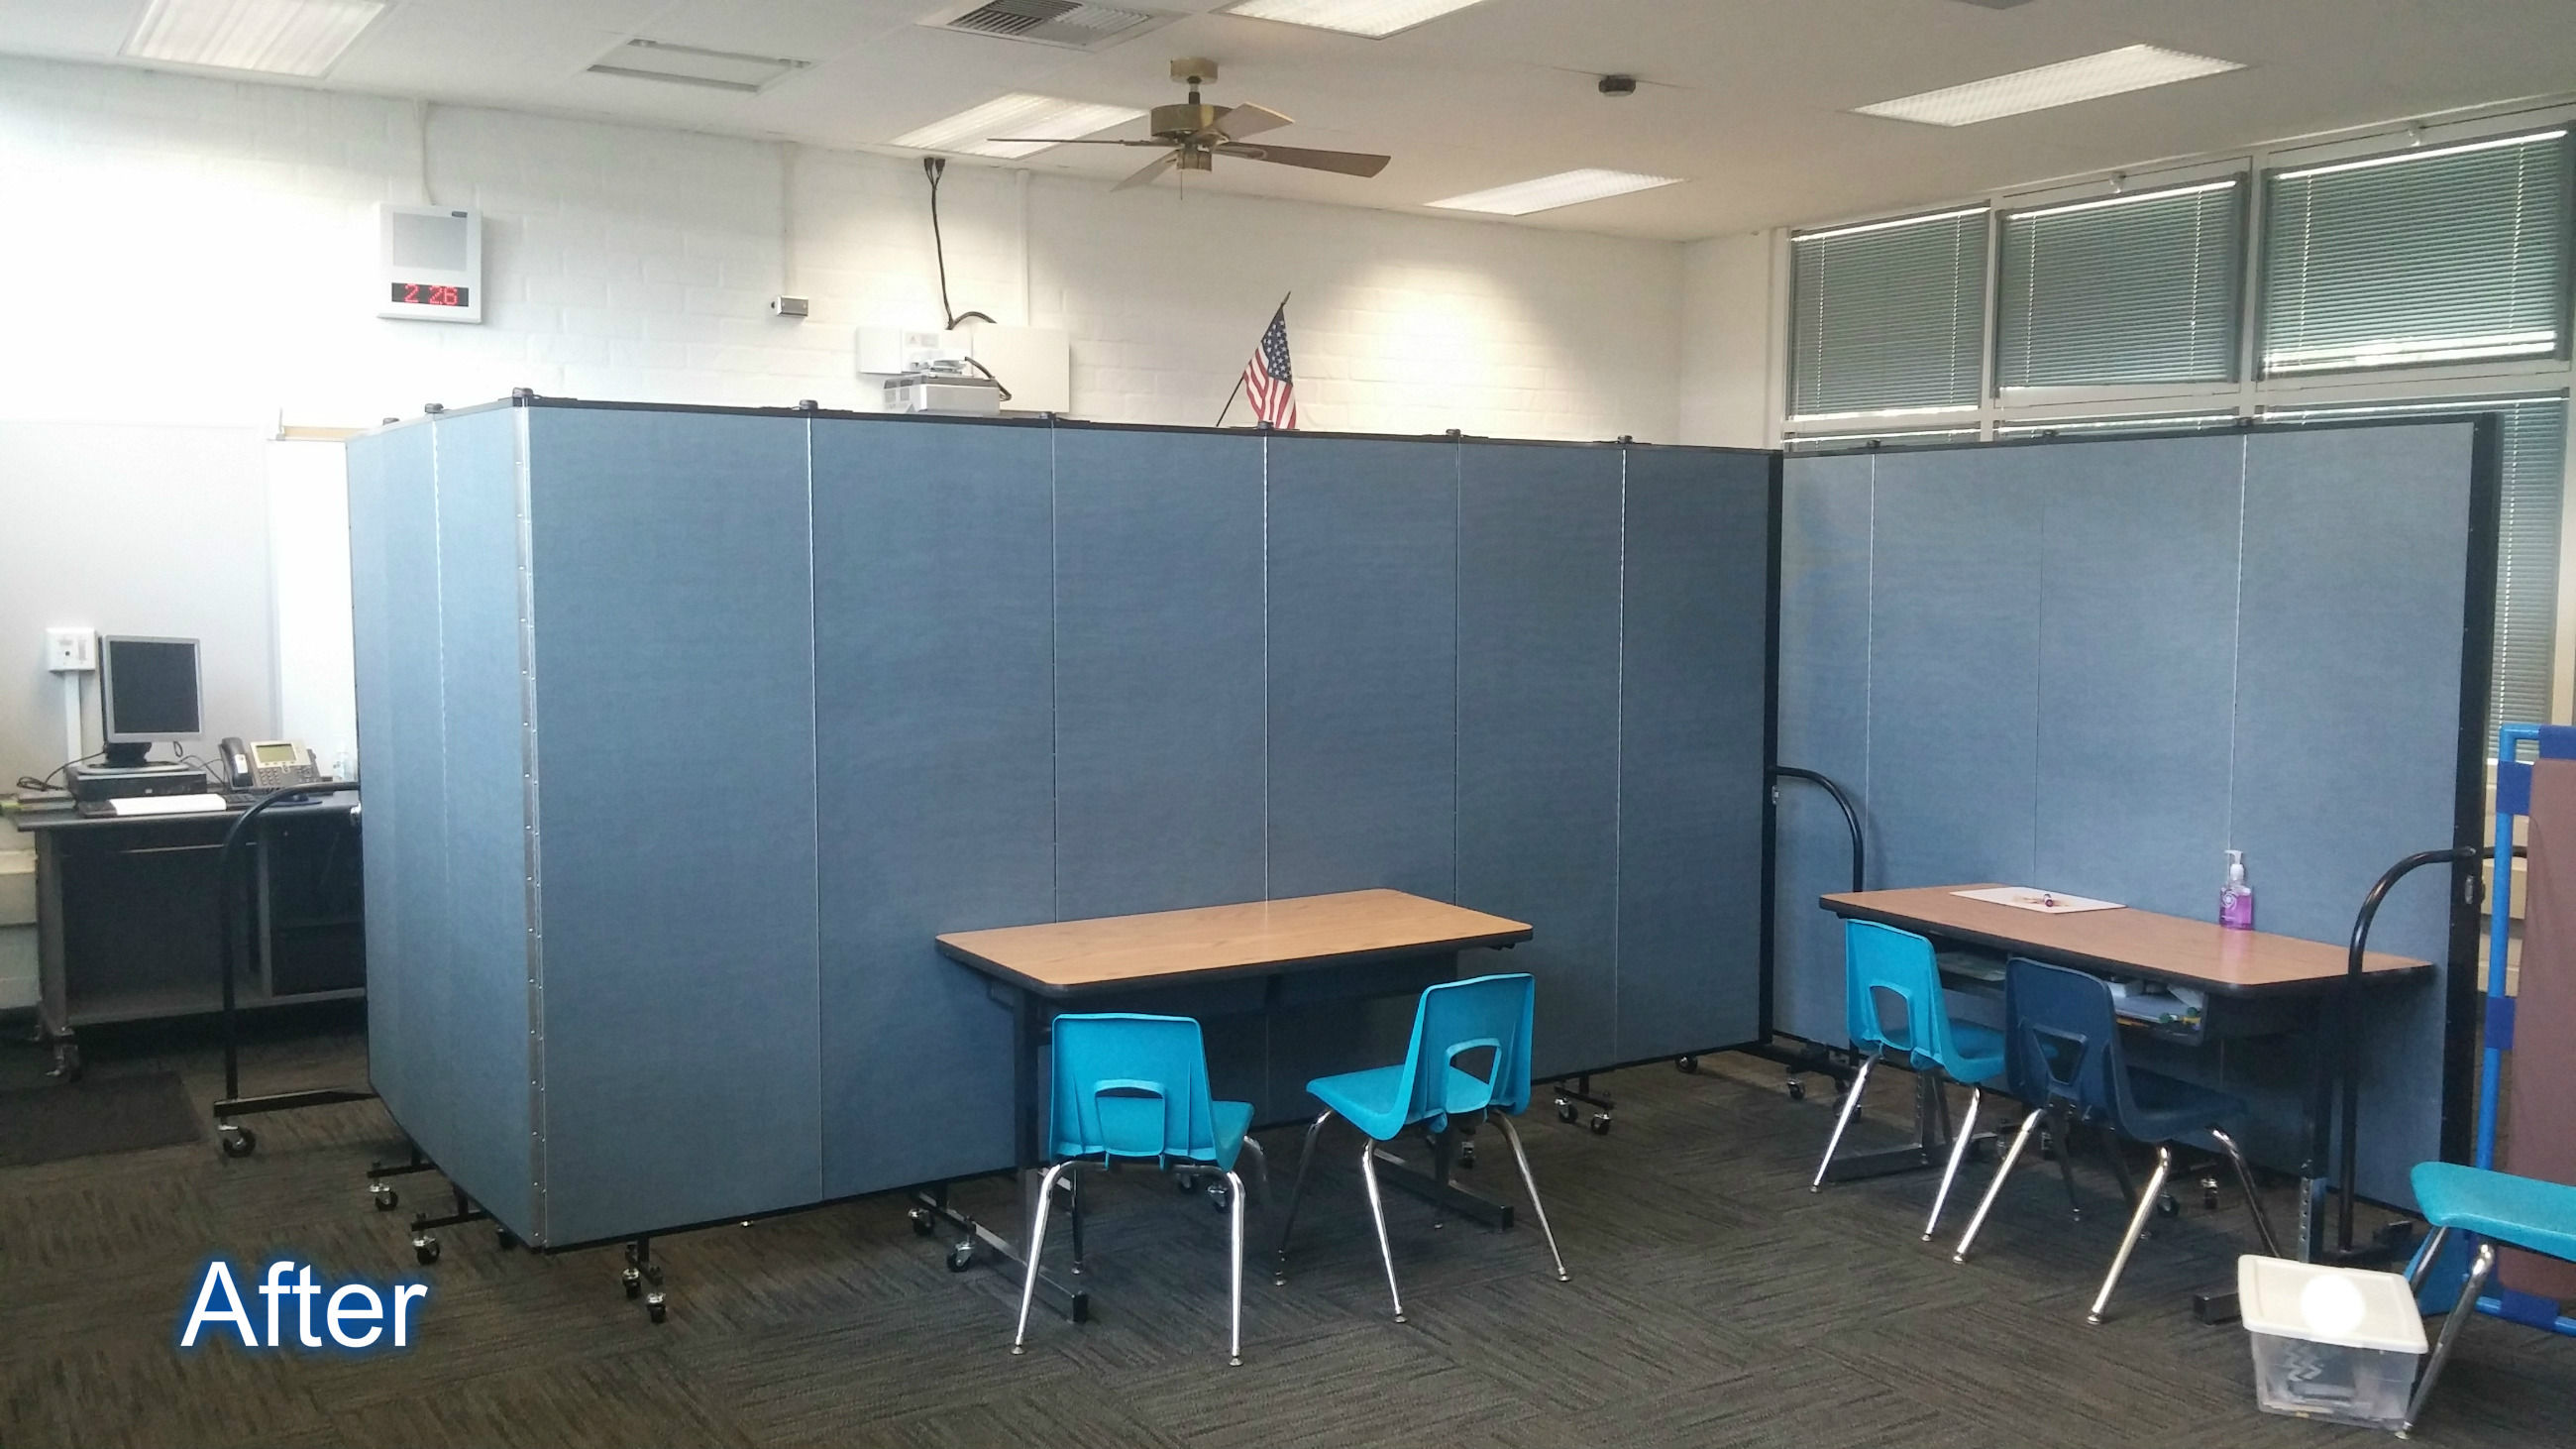 Screenflex training room walls create privacy in a classrom